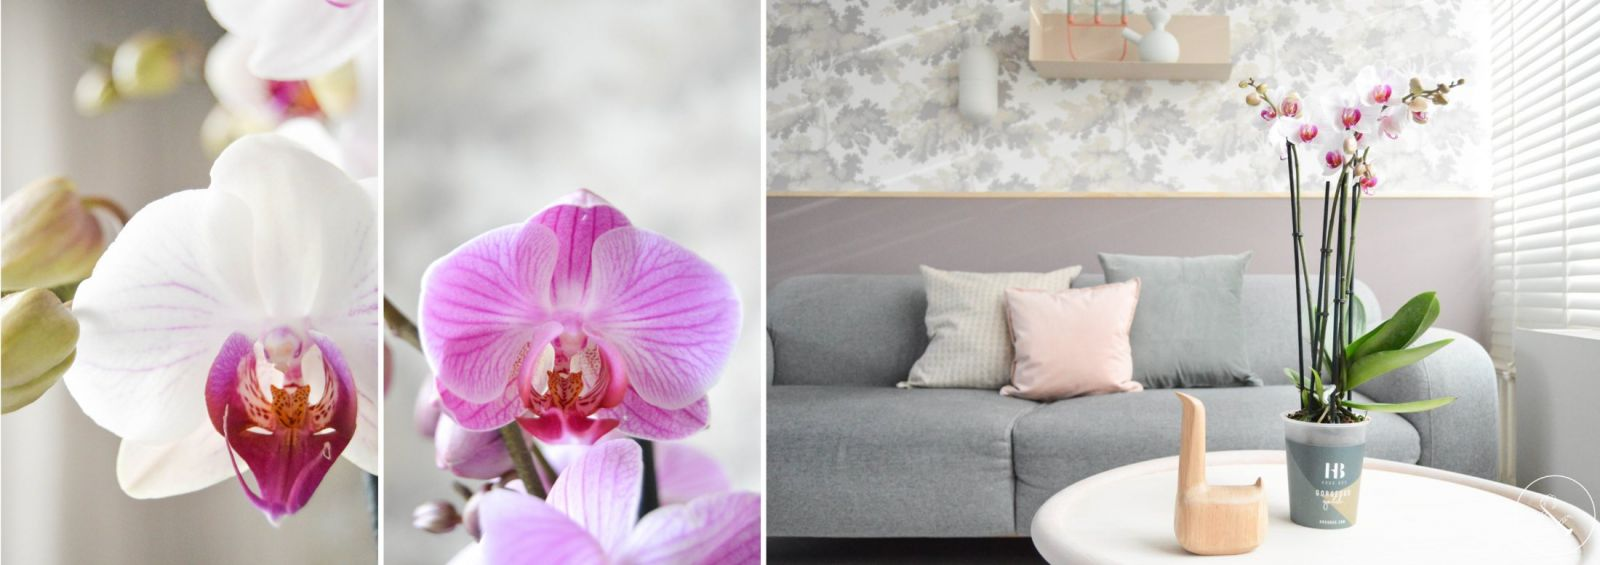 how to maintain a phalaenopsis